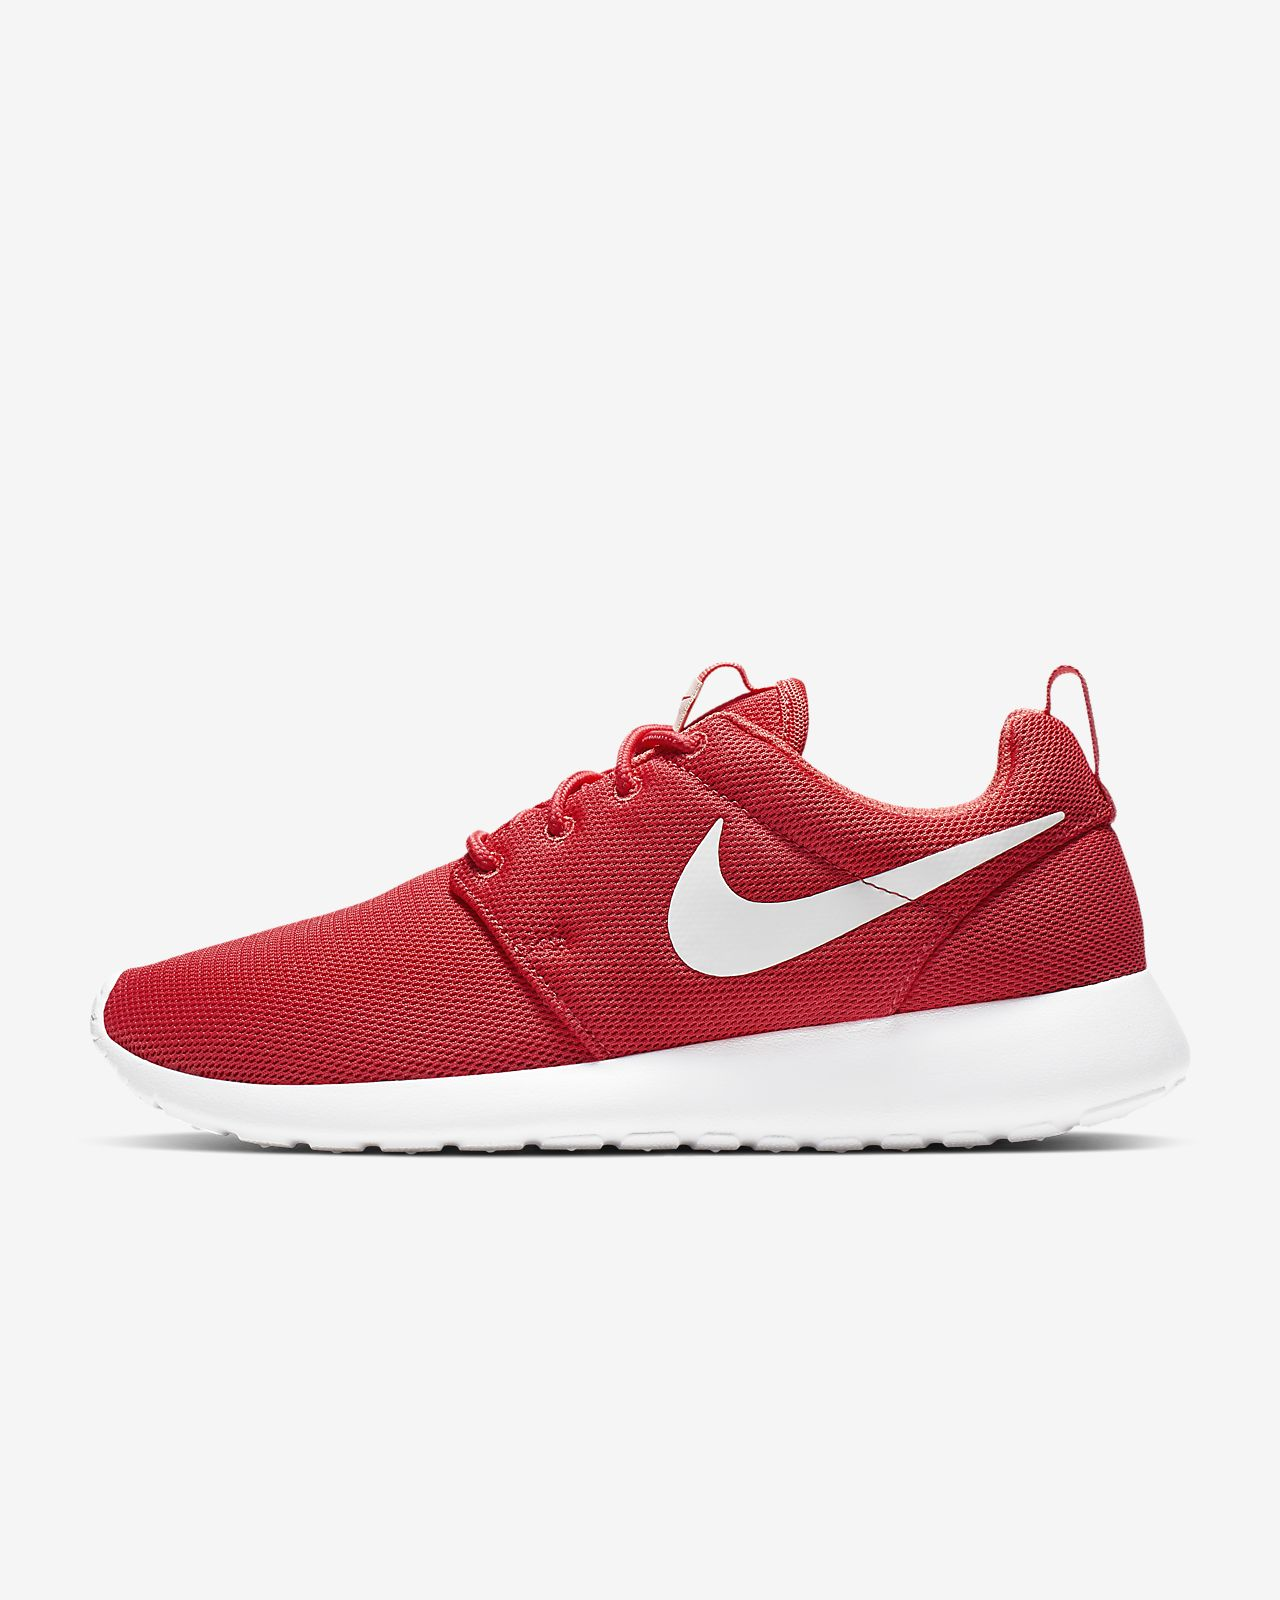 ab41362ddeab Low Resolution Nike Roshe One Women s Shoe Nike Roshe One Women s Shoe